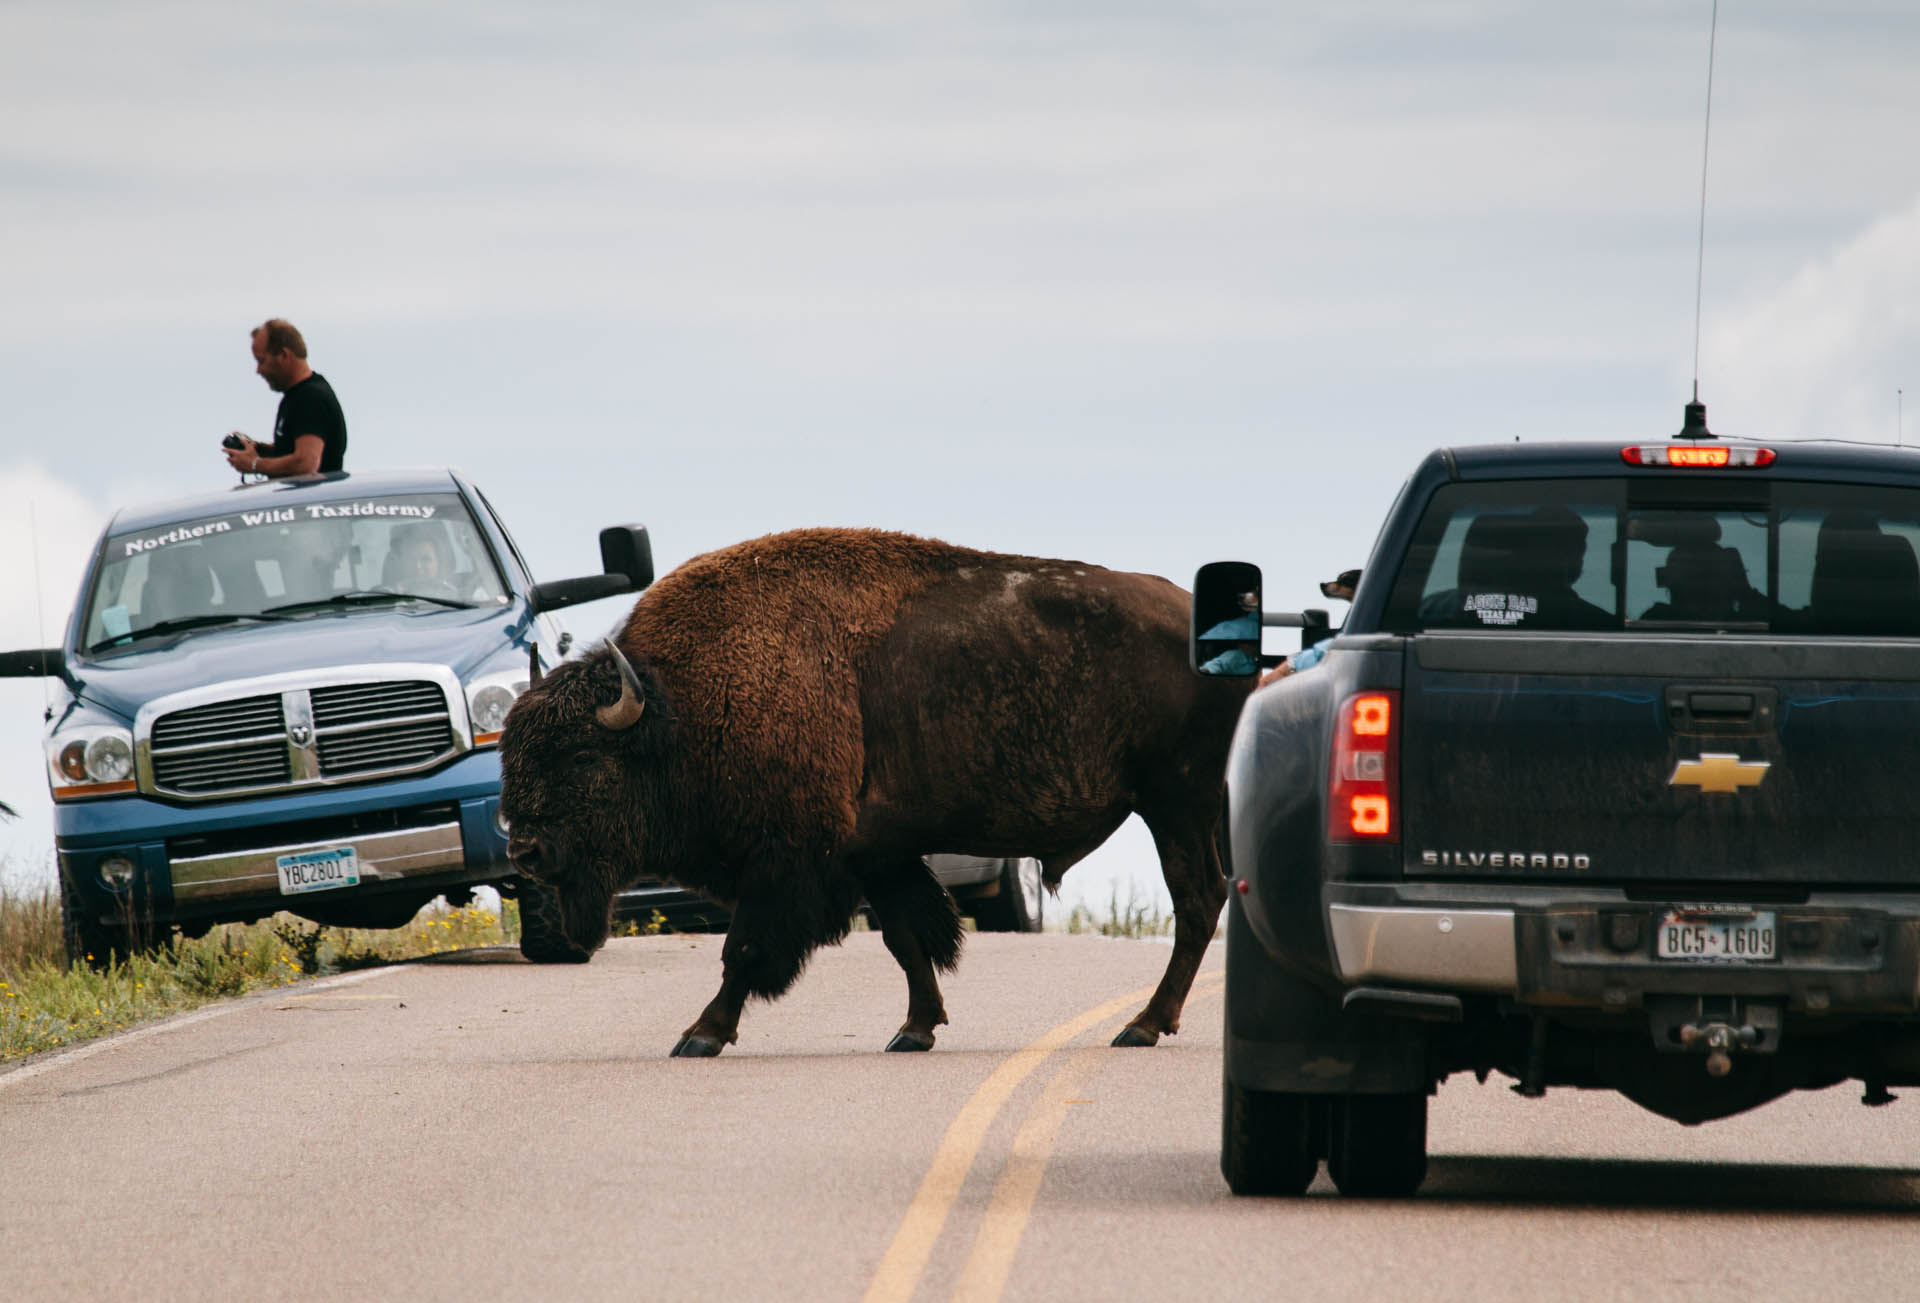 large-bison-walks-between-trucks-nd